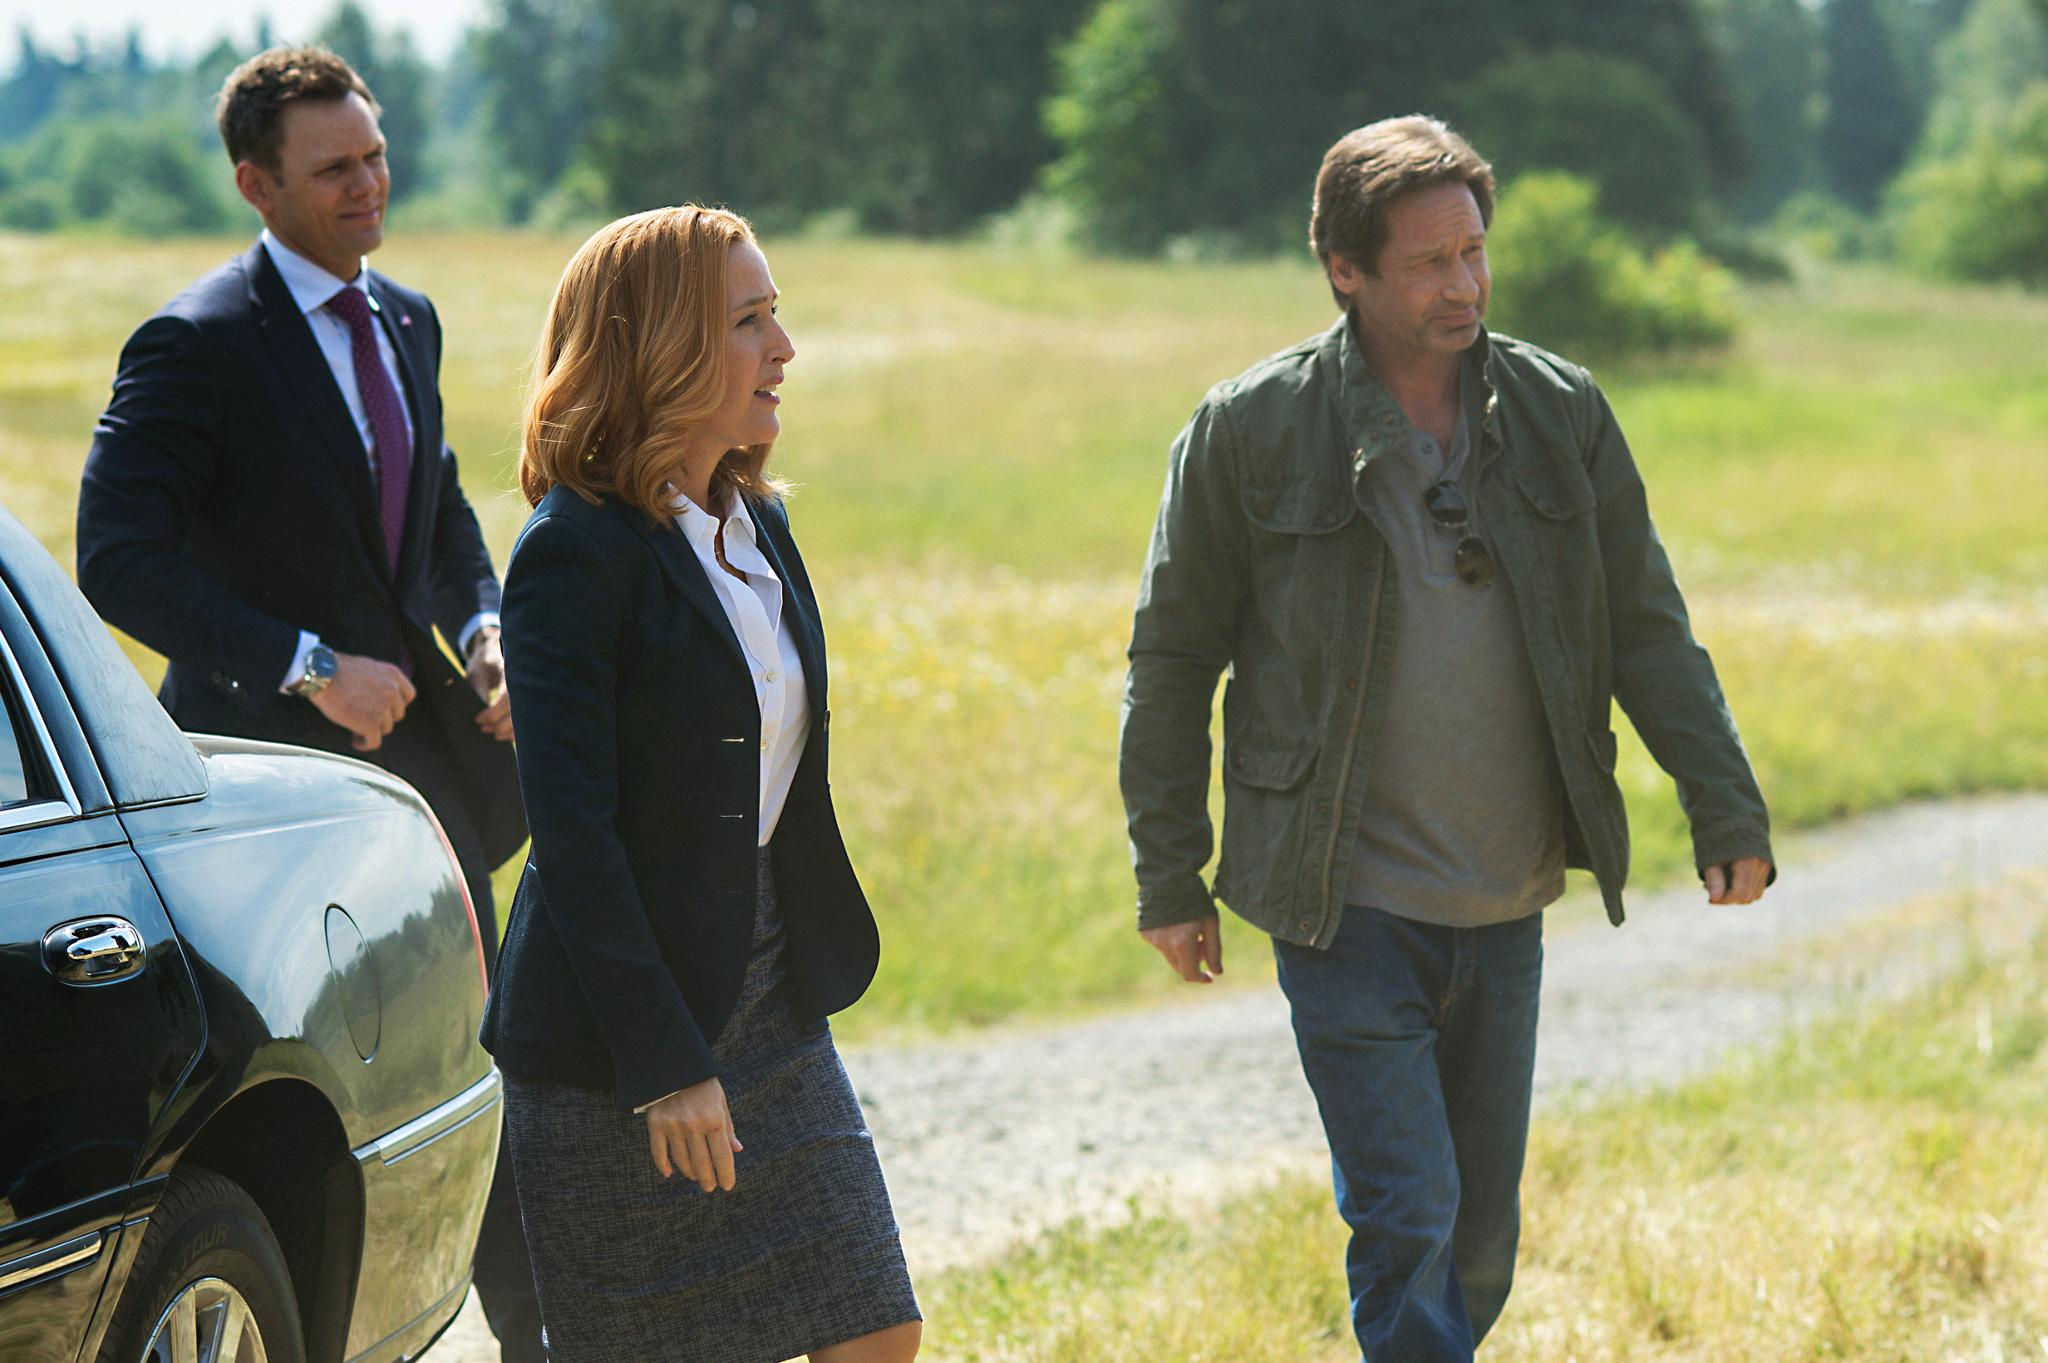 Watch The X-Files Full Episodes Online on FOX NOW